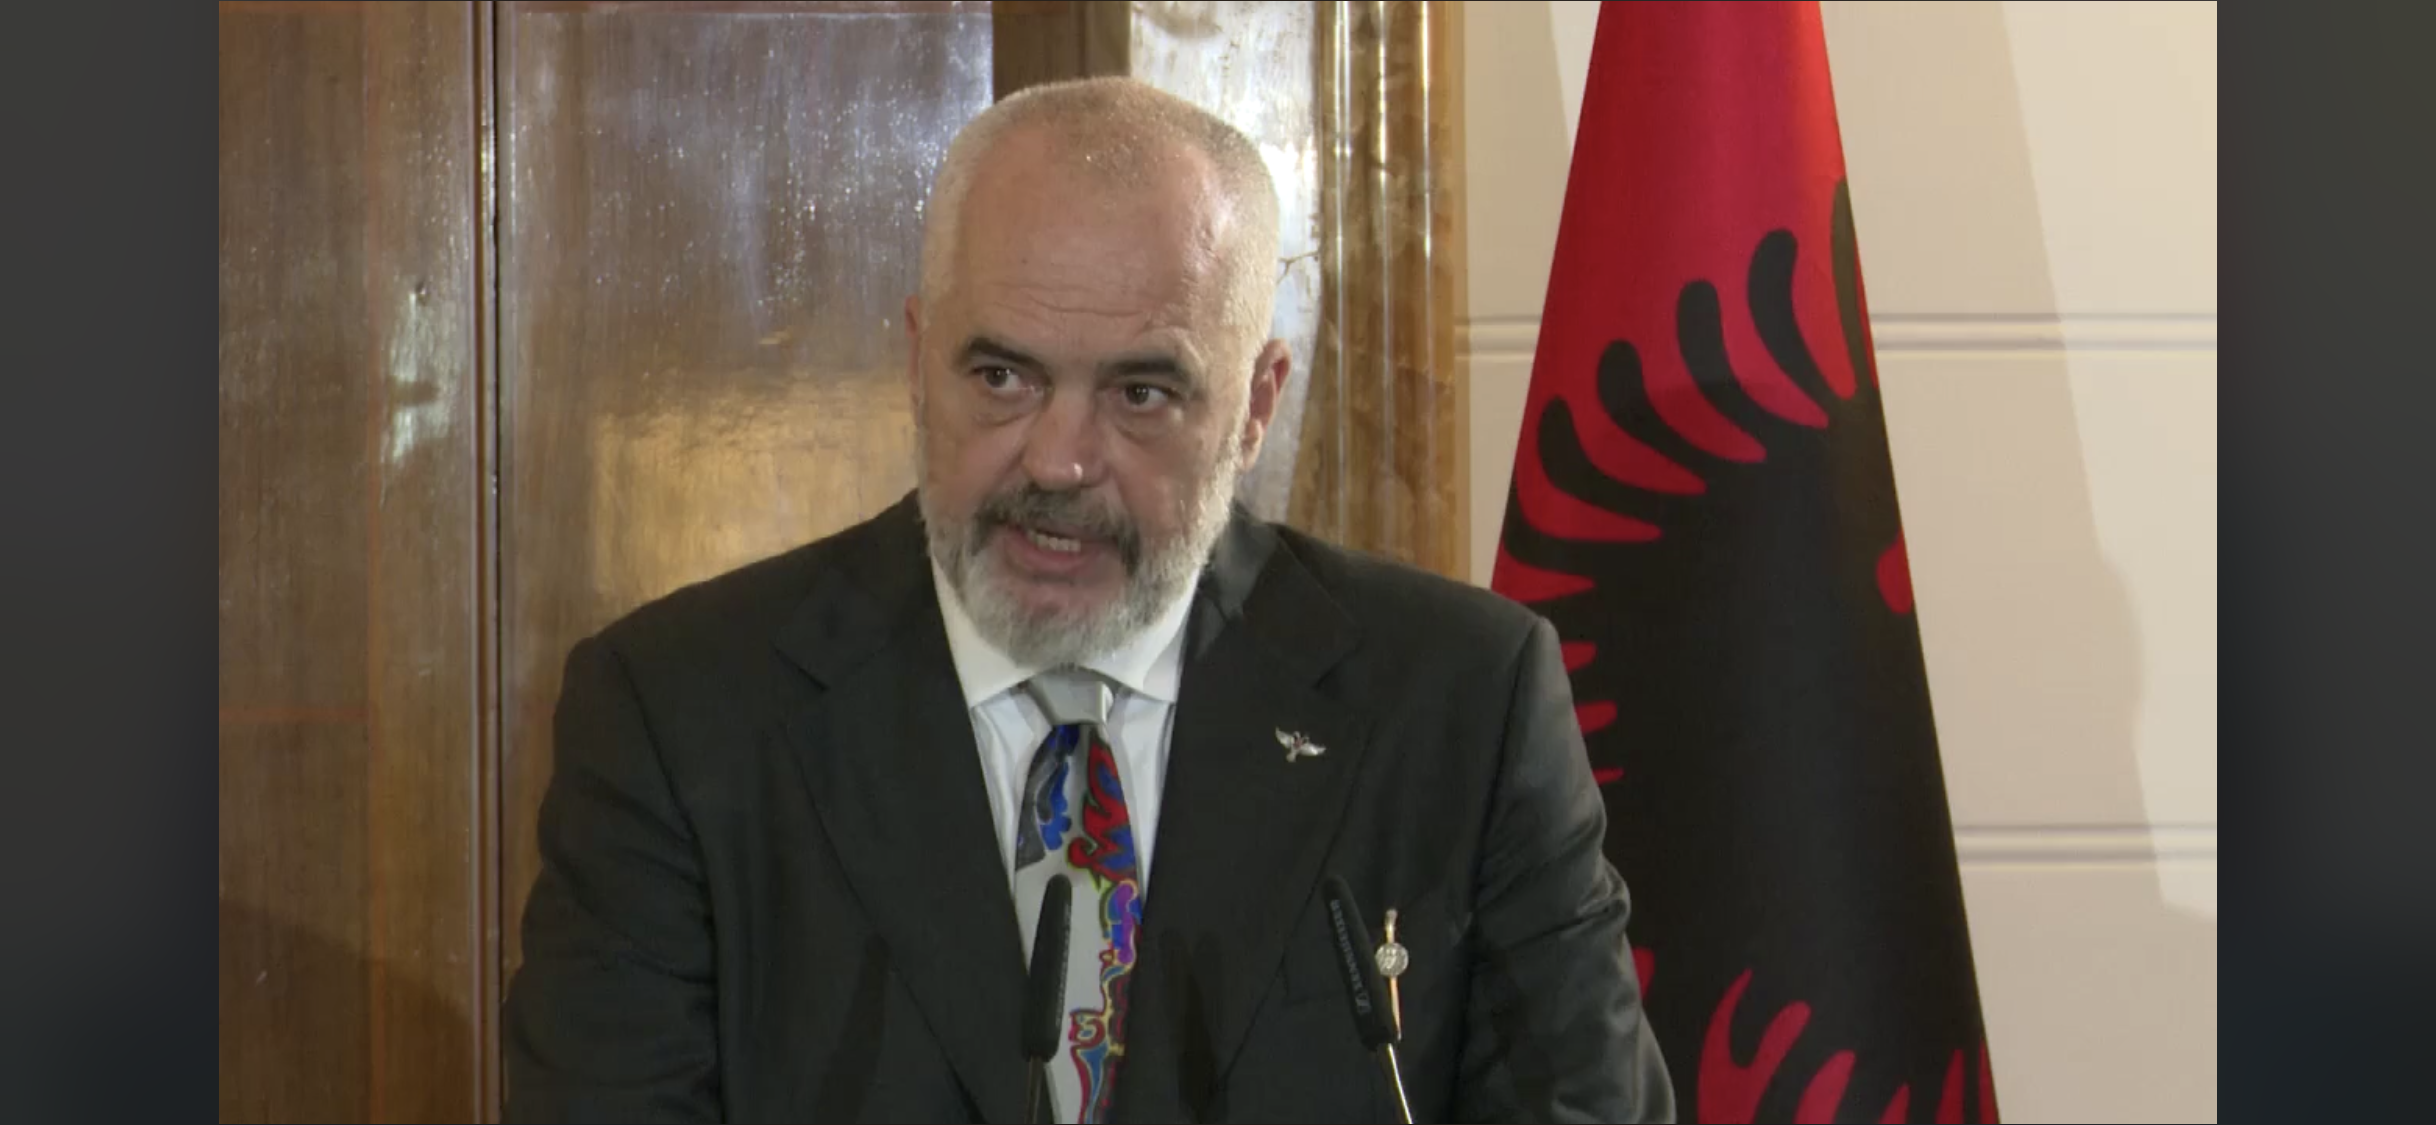 Albanian Government Accused of Manipulating COVID-19 Aid Distribution Figures